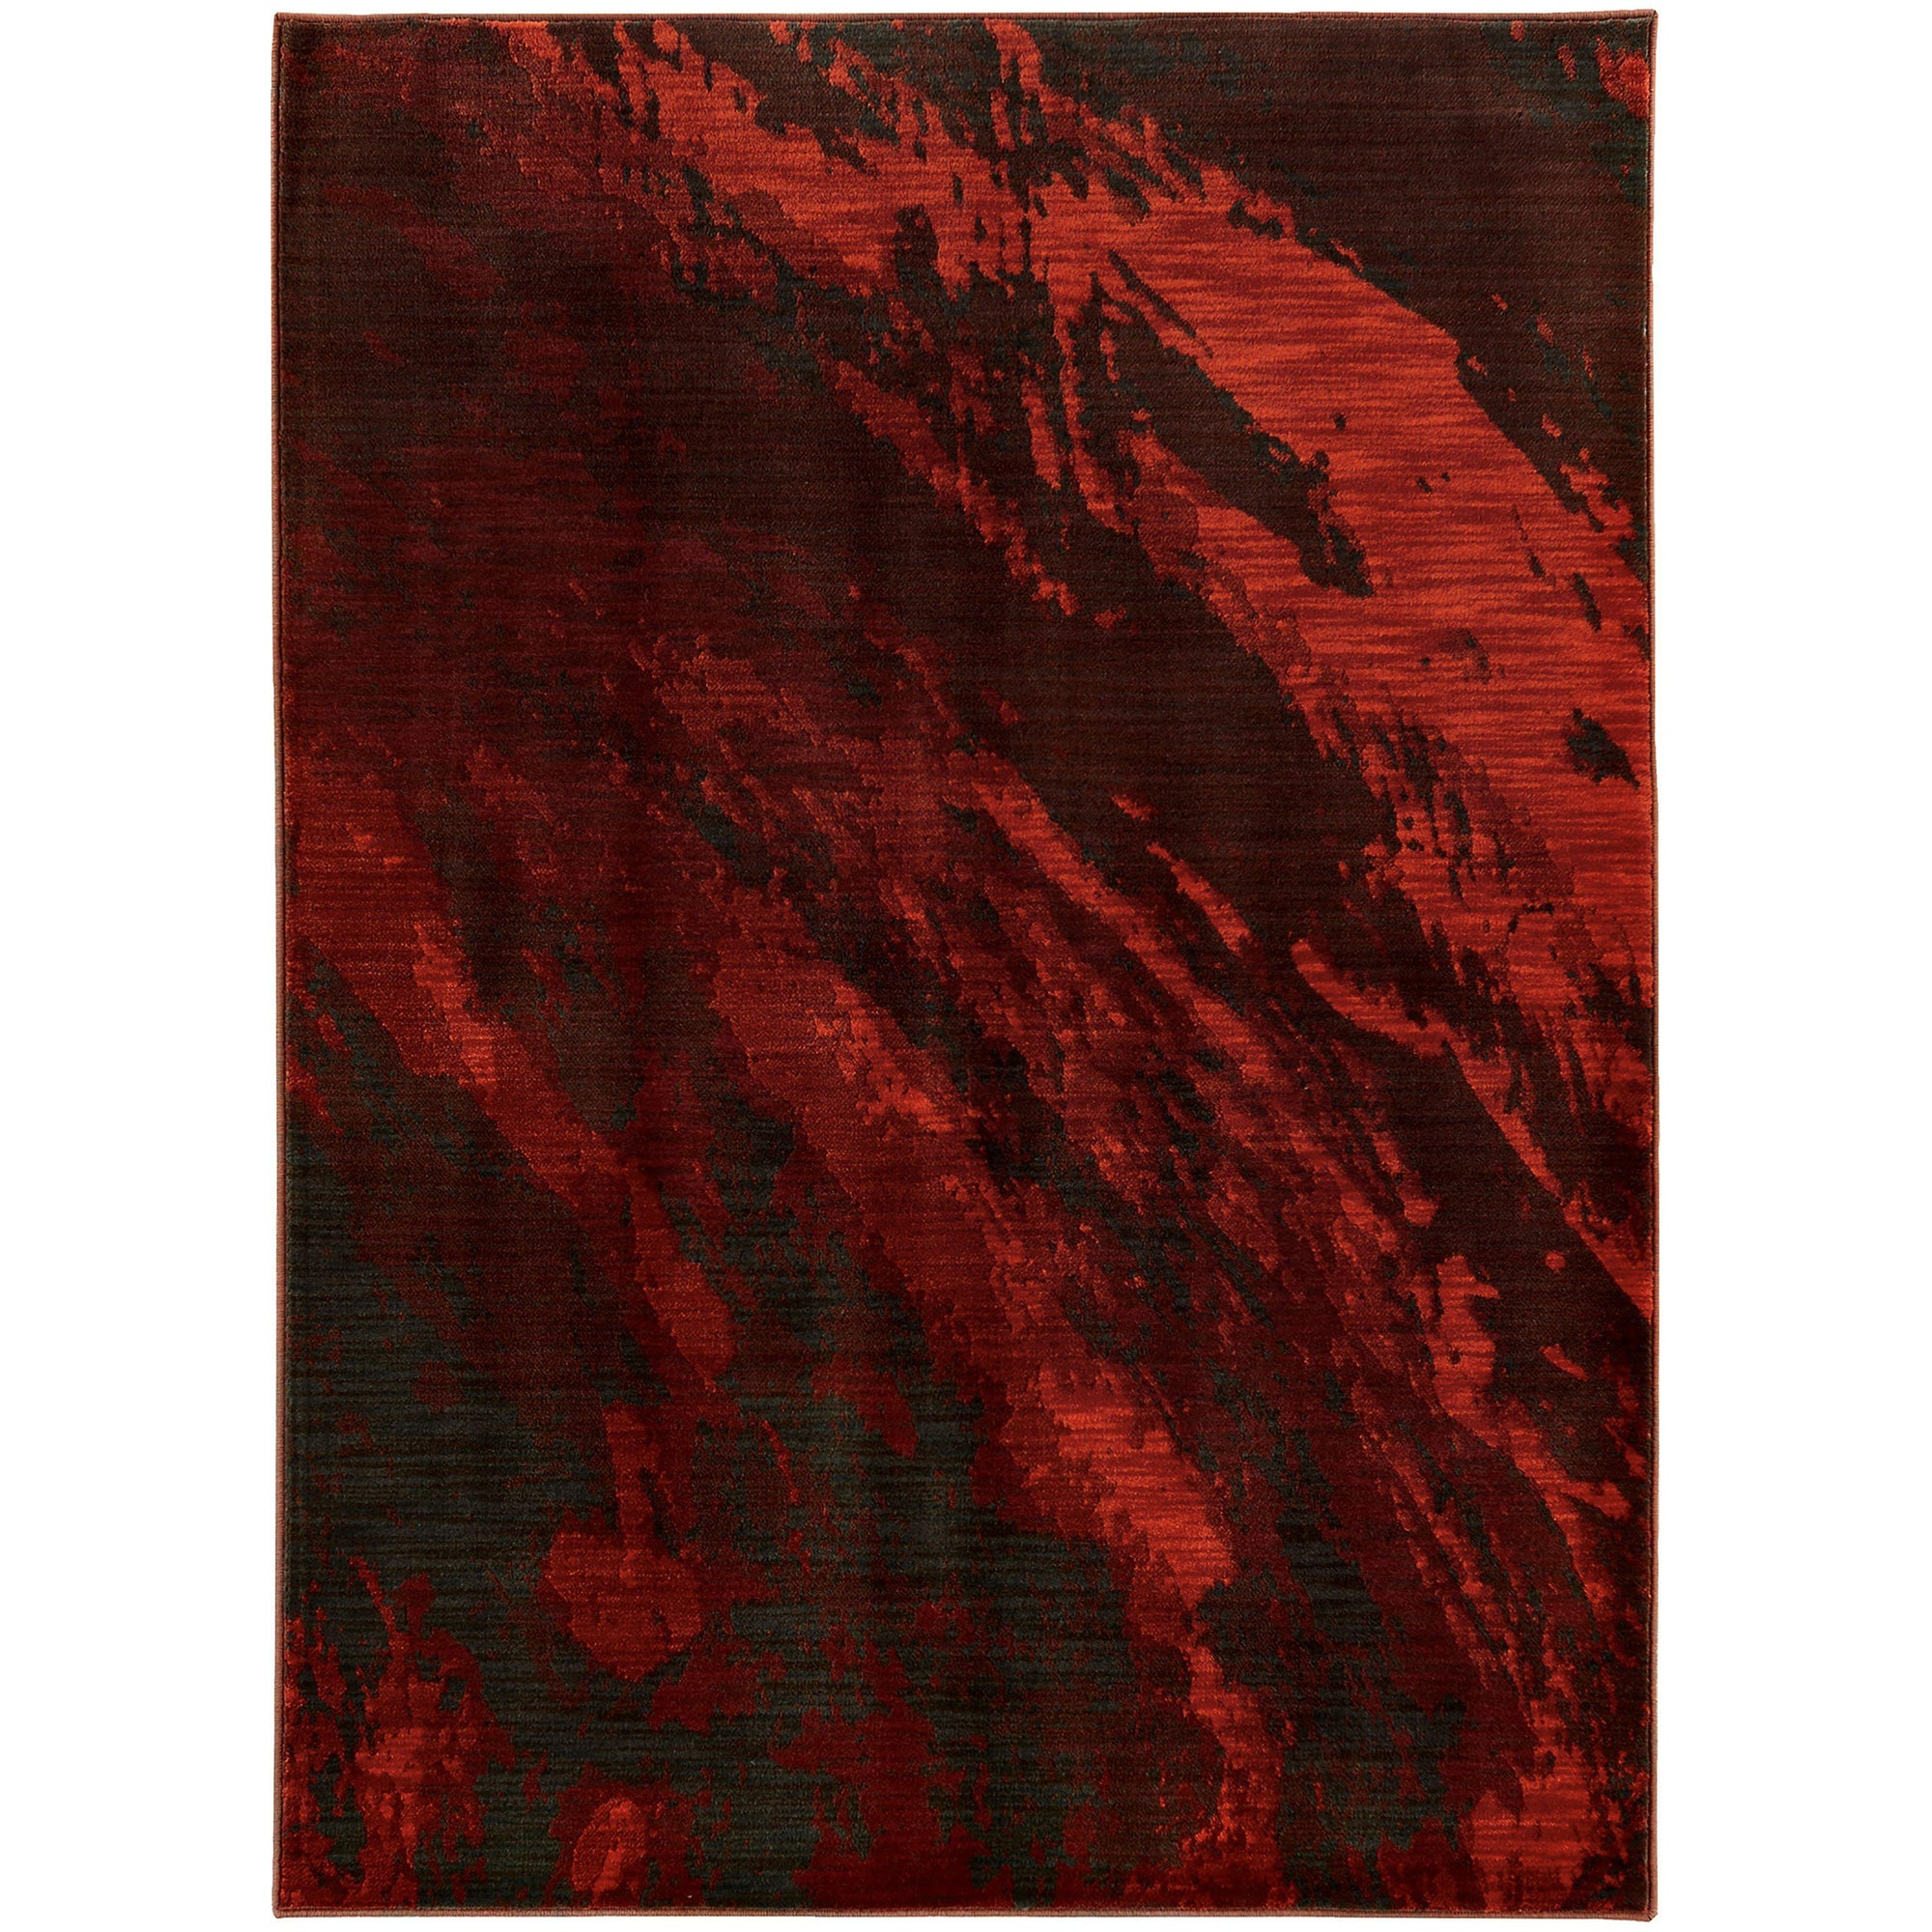 "Sedona - 6367B - Red/Charcoal-Area Rug-Oriental Weavers-1'10"" X 3' 0""-The Rug Truck"